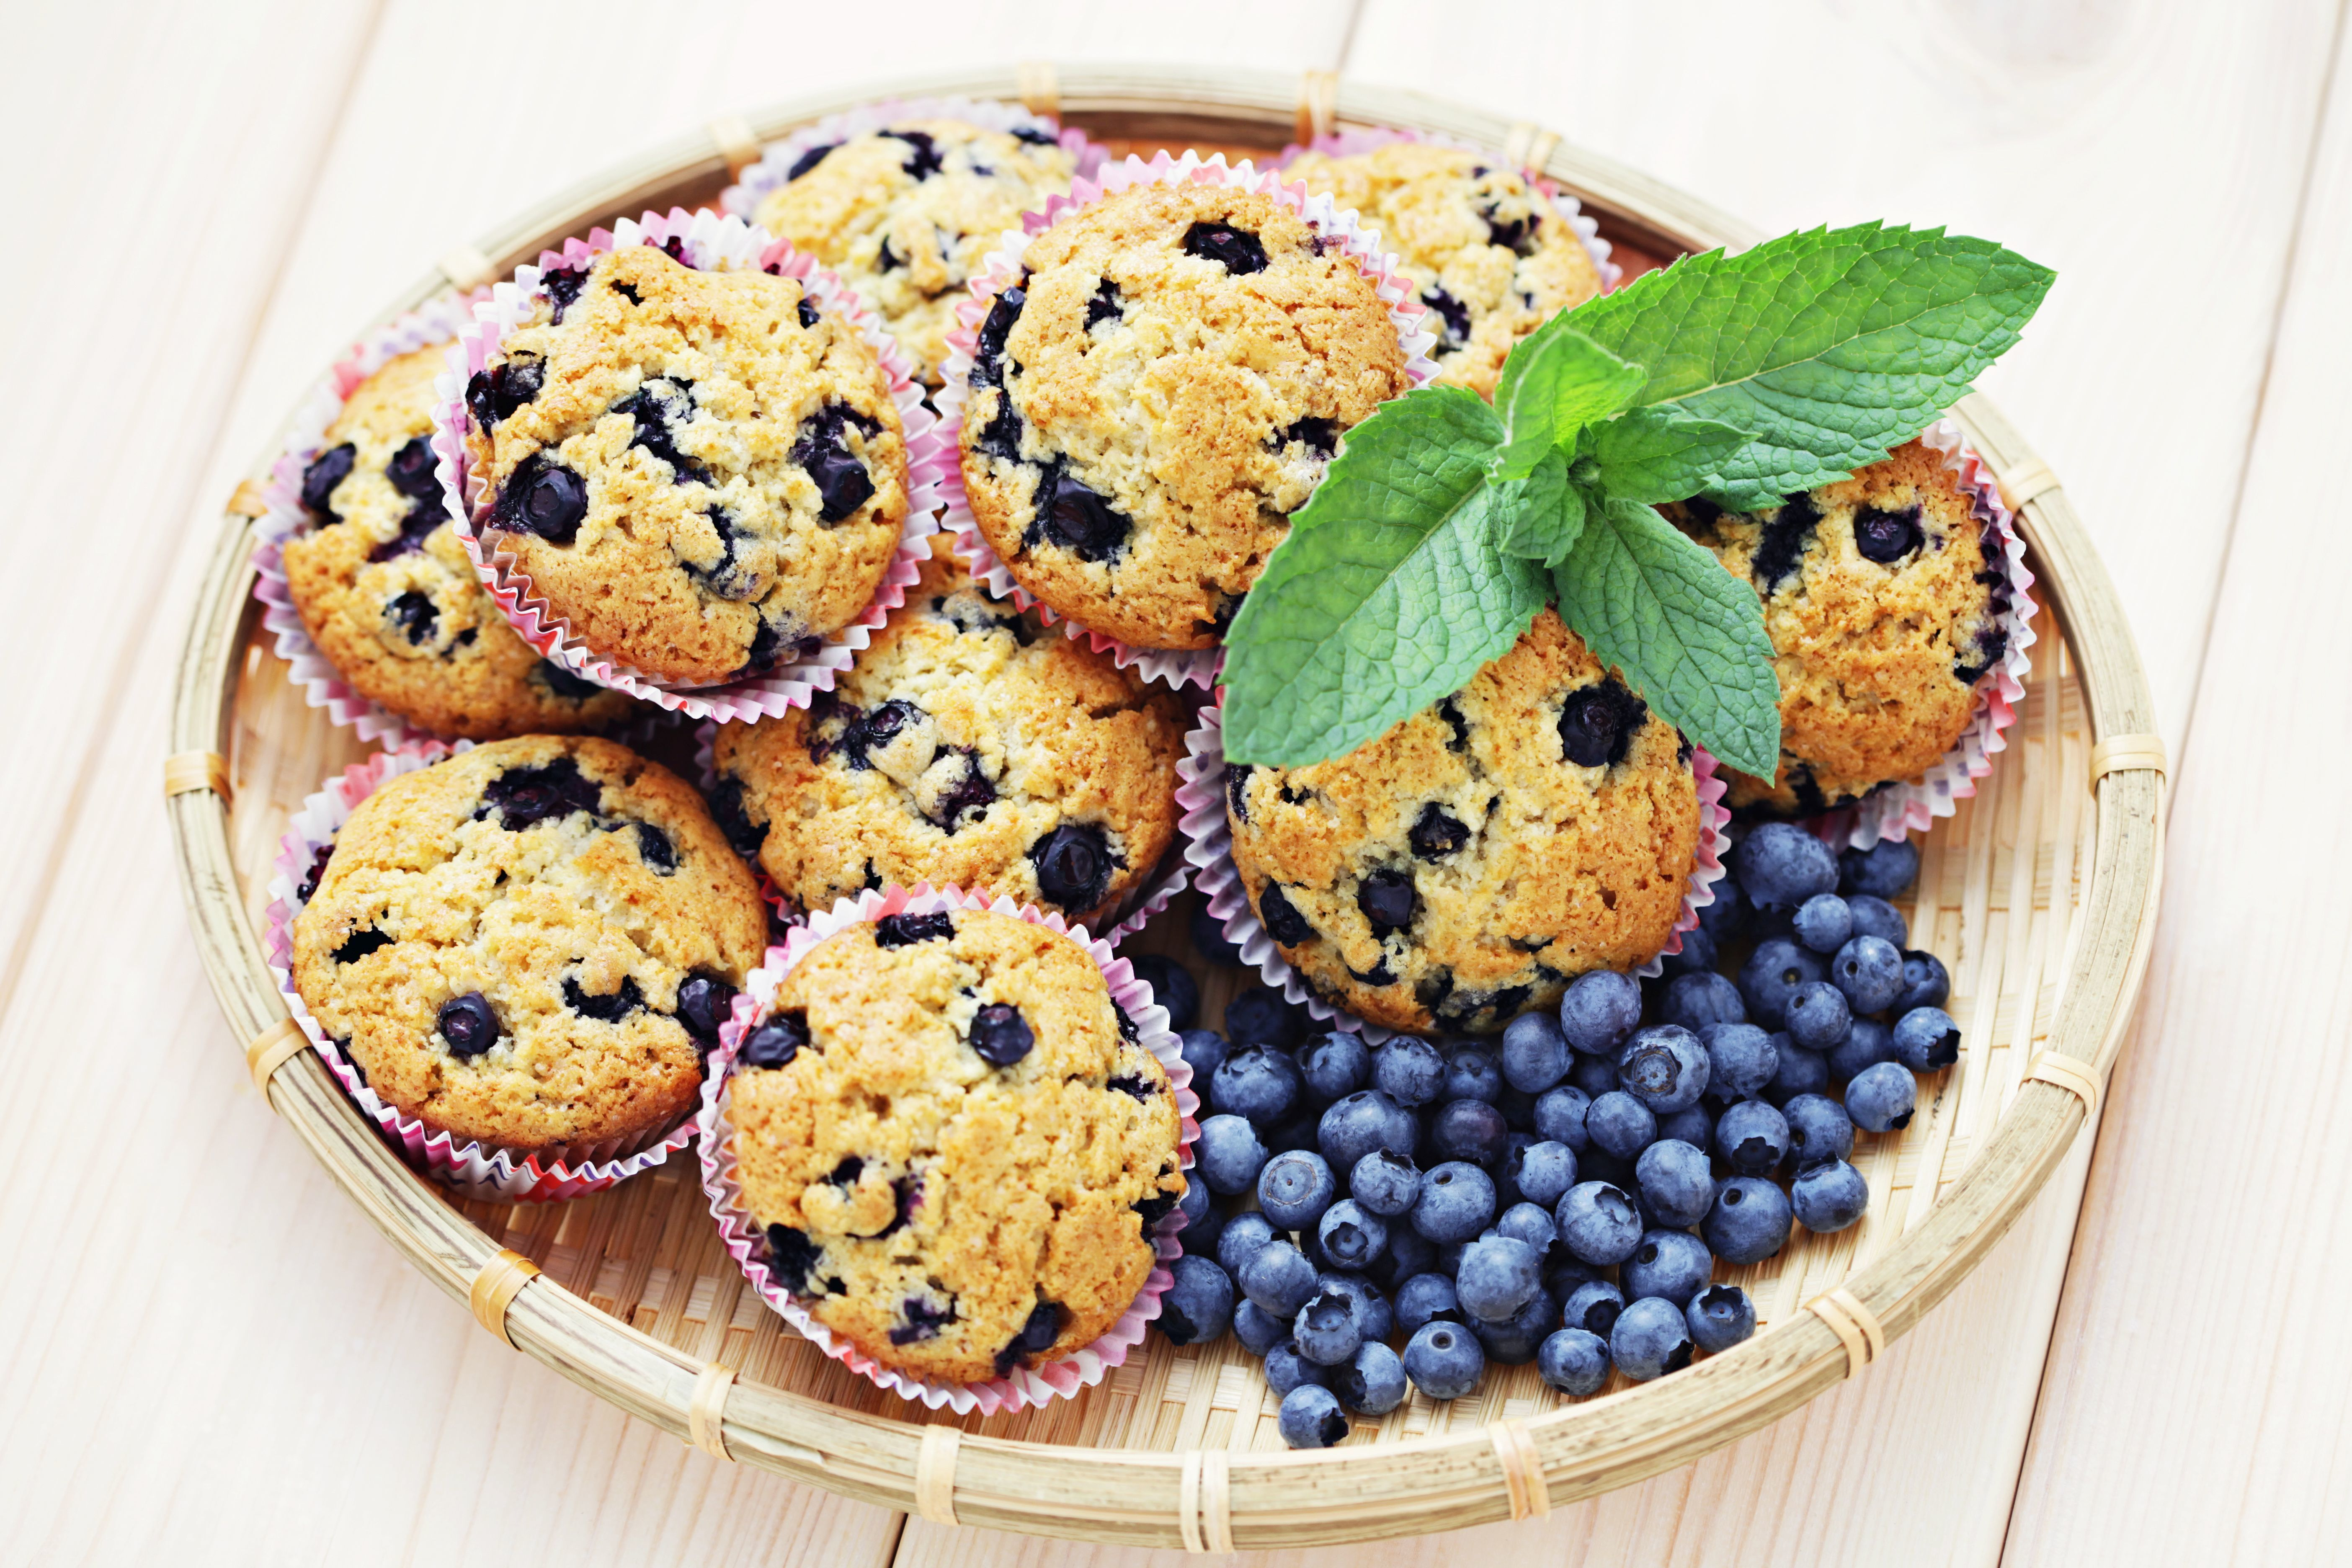 Gluten-Free Banana, Coconut and Blueberry Muffins